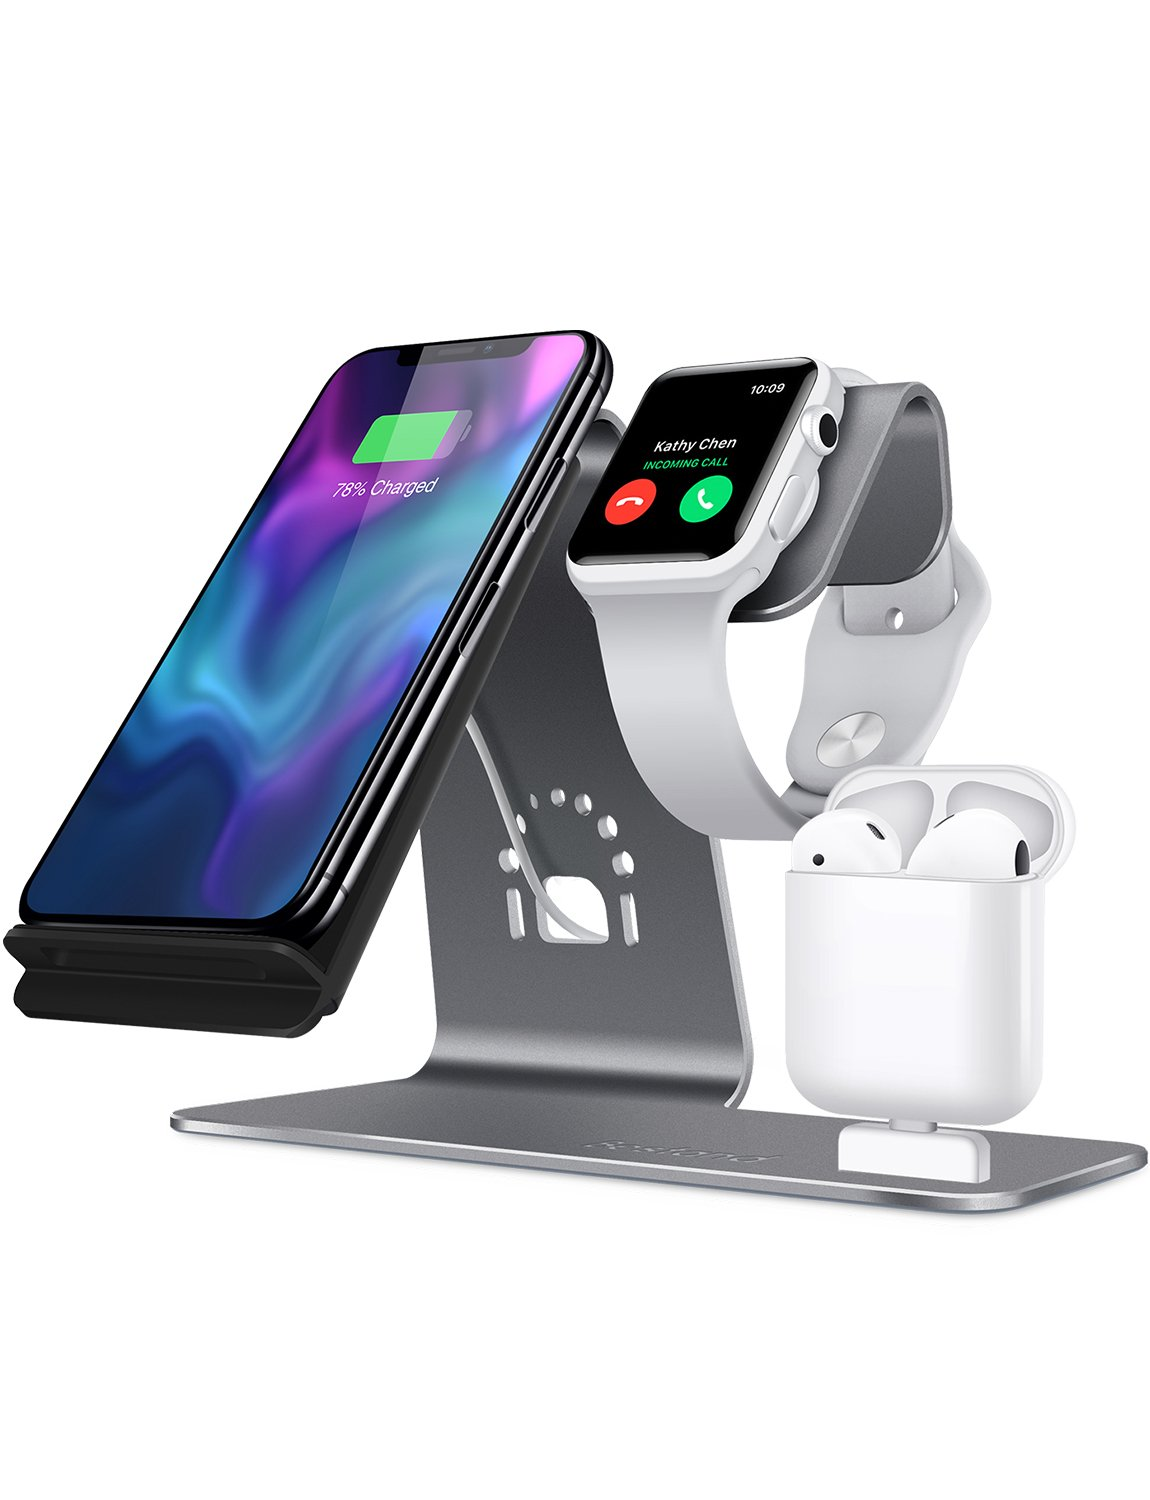 Bestand H05-Grey 3 in 1 Aluminum Apple iWatch Stand, Airpods Charging Station, Qi Fast Wireless Charger Dock for iPhone X/8/7/6s Plus Samsung S8 and other Qi-Enabled Devices, Grey by Bestand (Image #1)